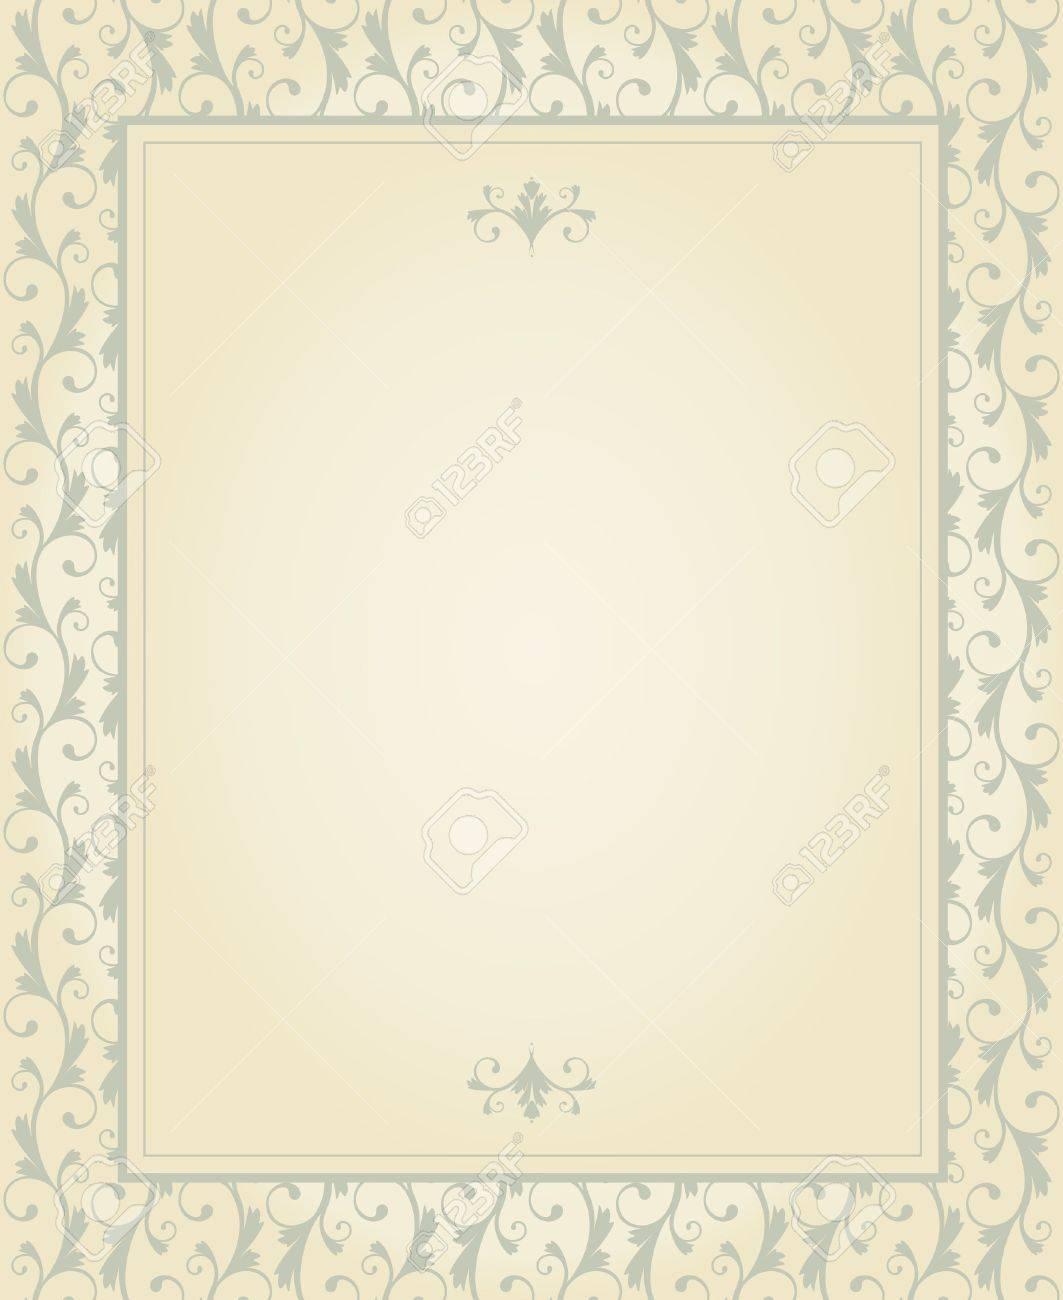 Greeting Card Template In Vintage Style Elements Are Grouped – Online Greeting Card Template